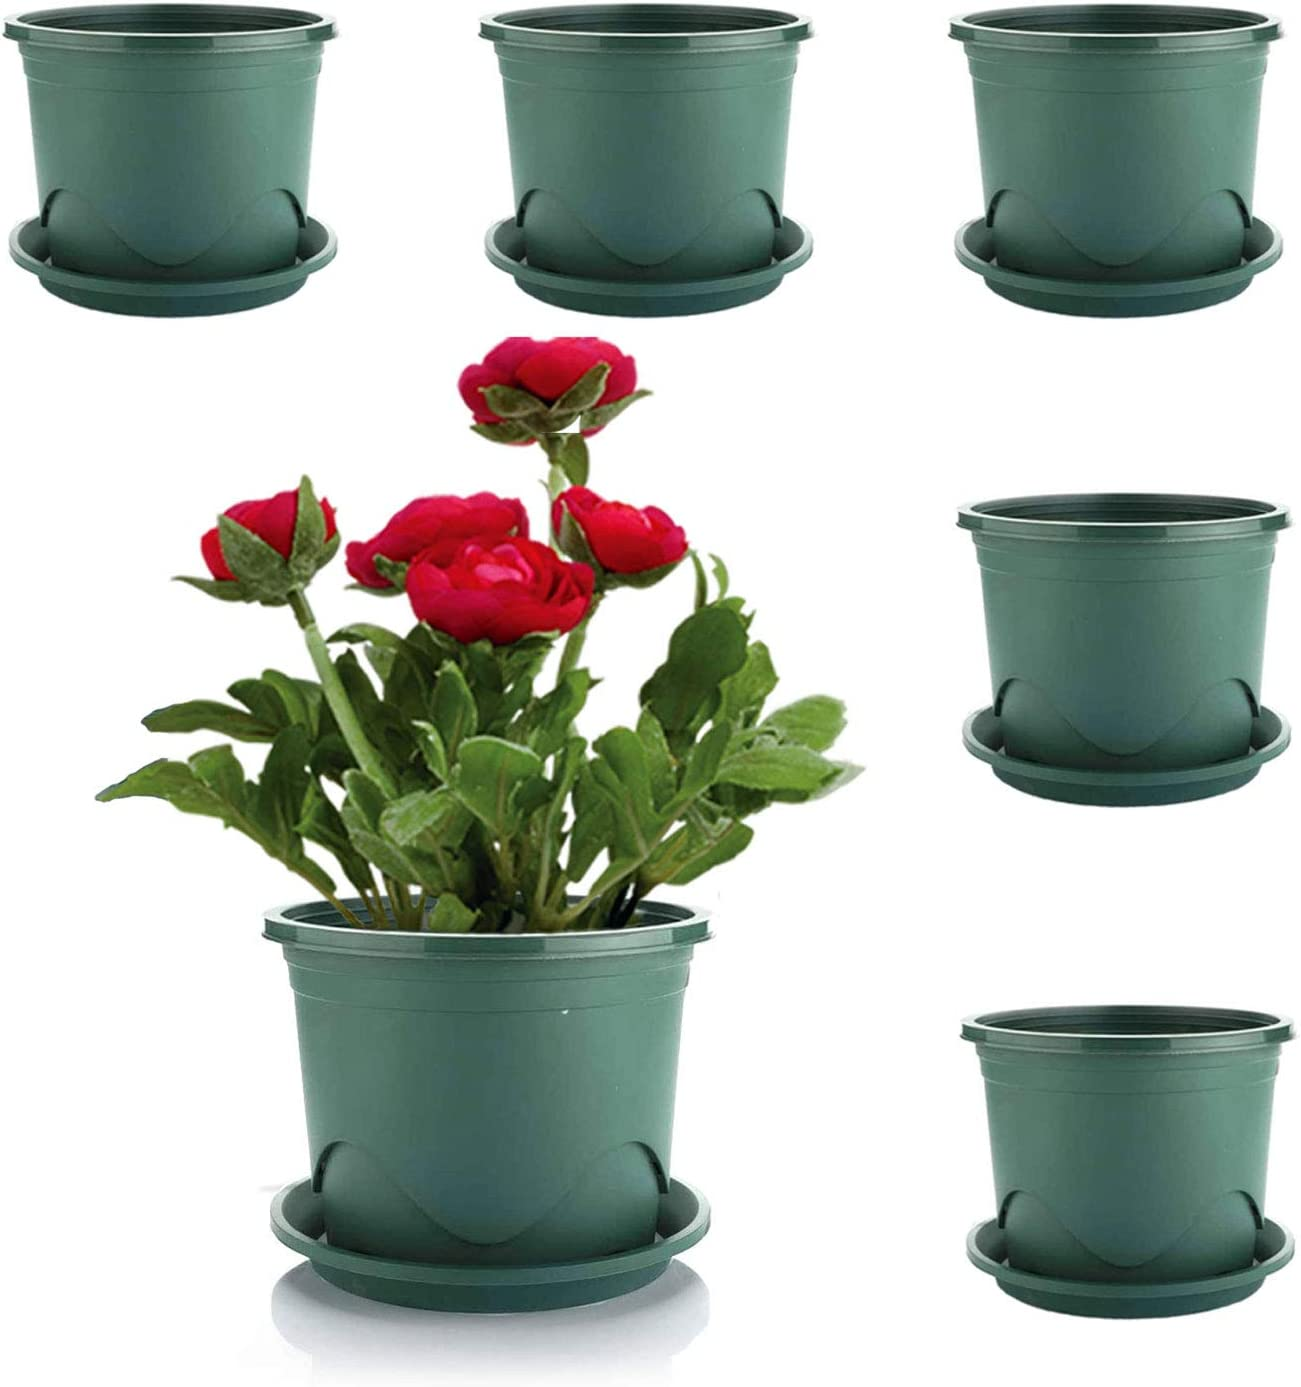 MOHENA Plant Pots with Saucers - 0.5 Gallon 6.5 Inch Plastic Dark Green Set of 6, Root-Control Nursery Seedling Planter Garden Flower Pot Container for Indoor Outdoor Bonsai Plants, Aloe, Herb